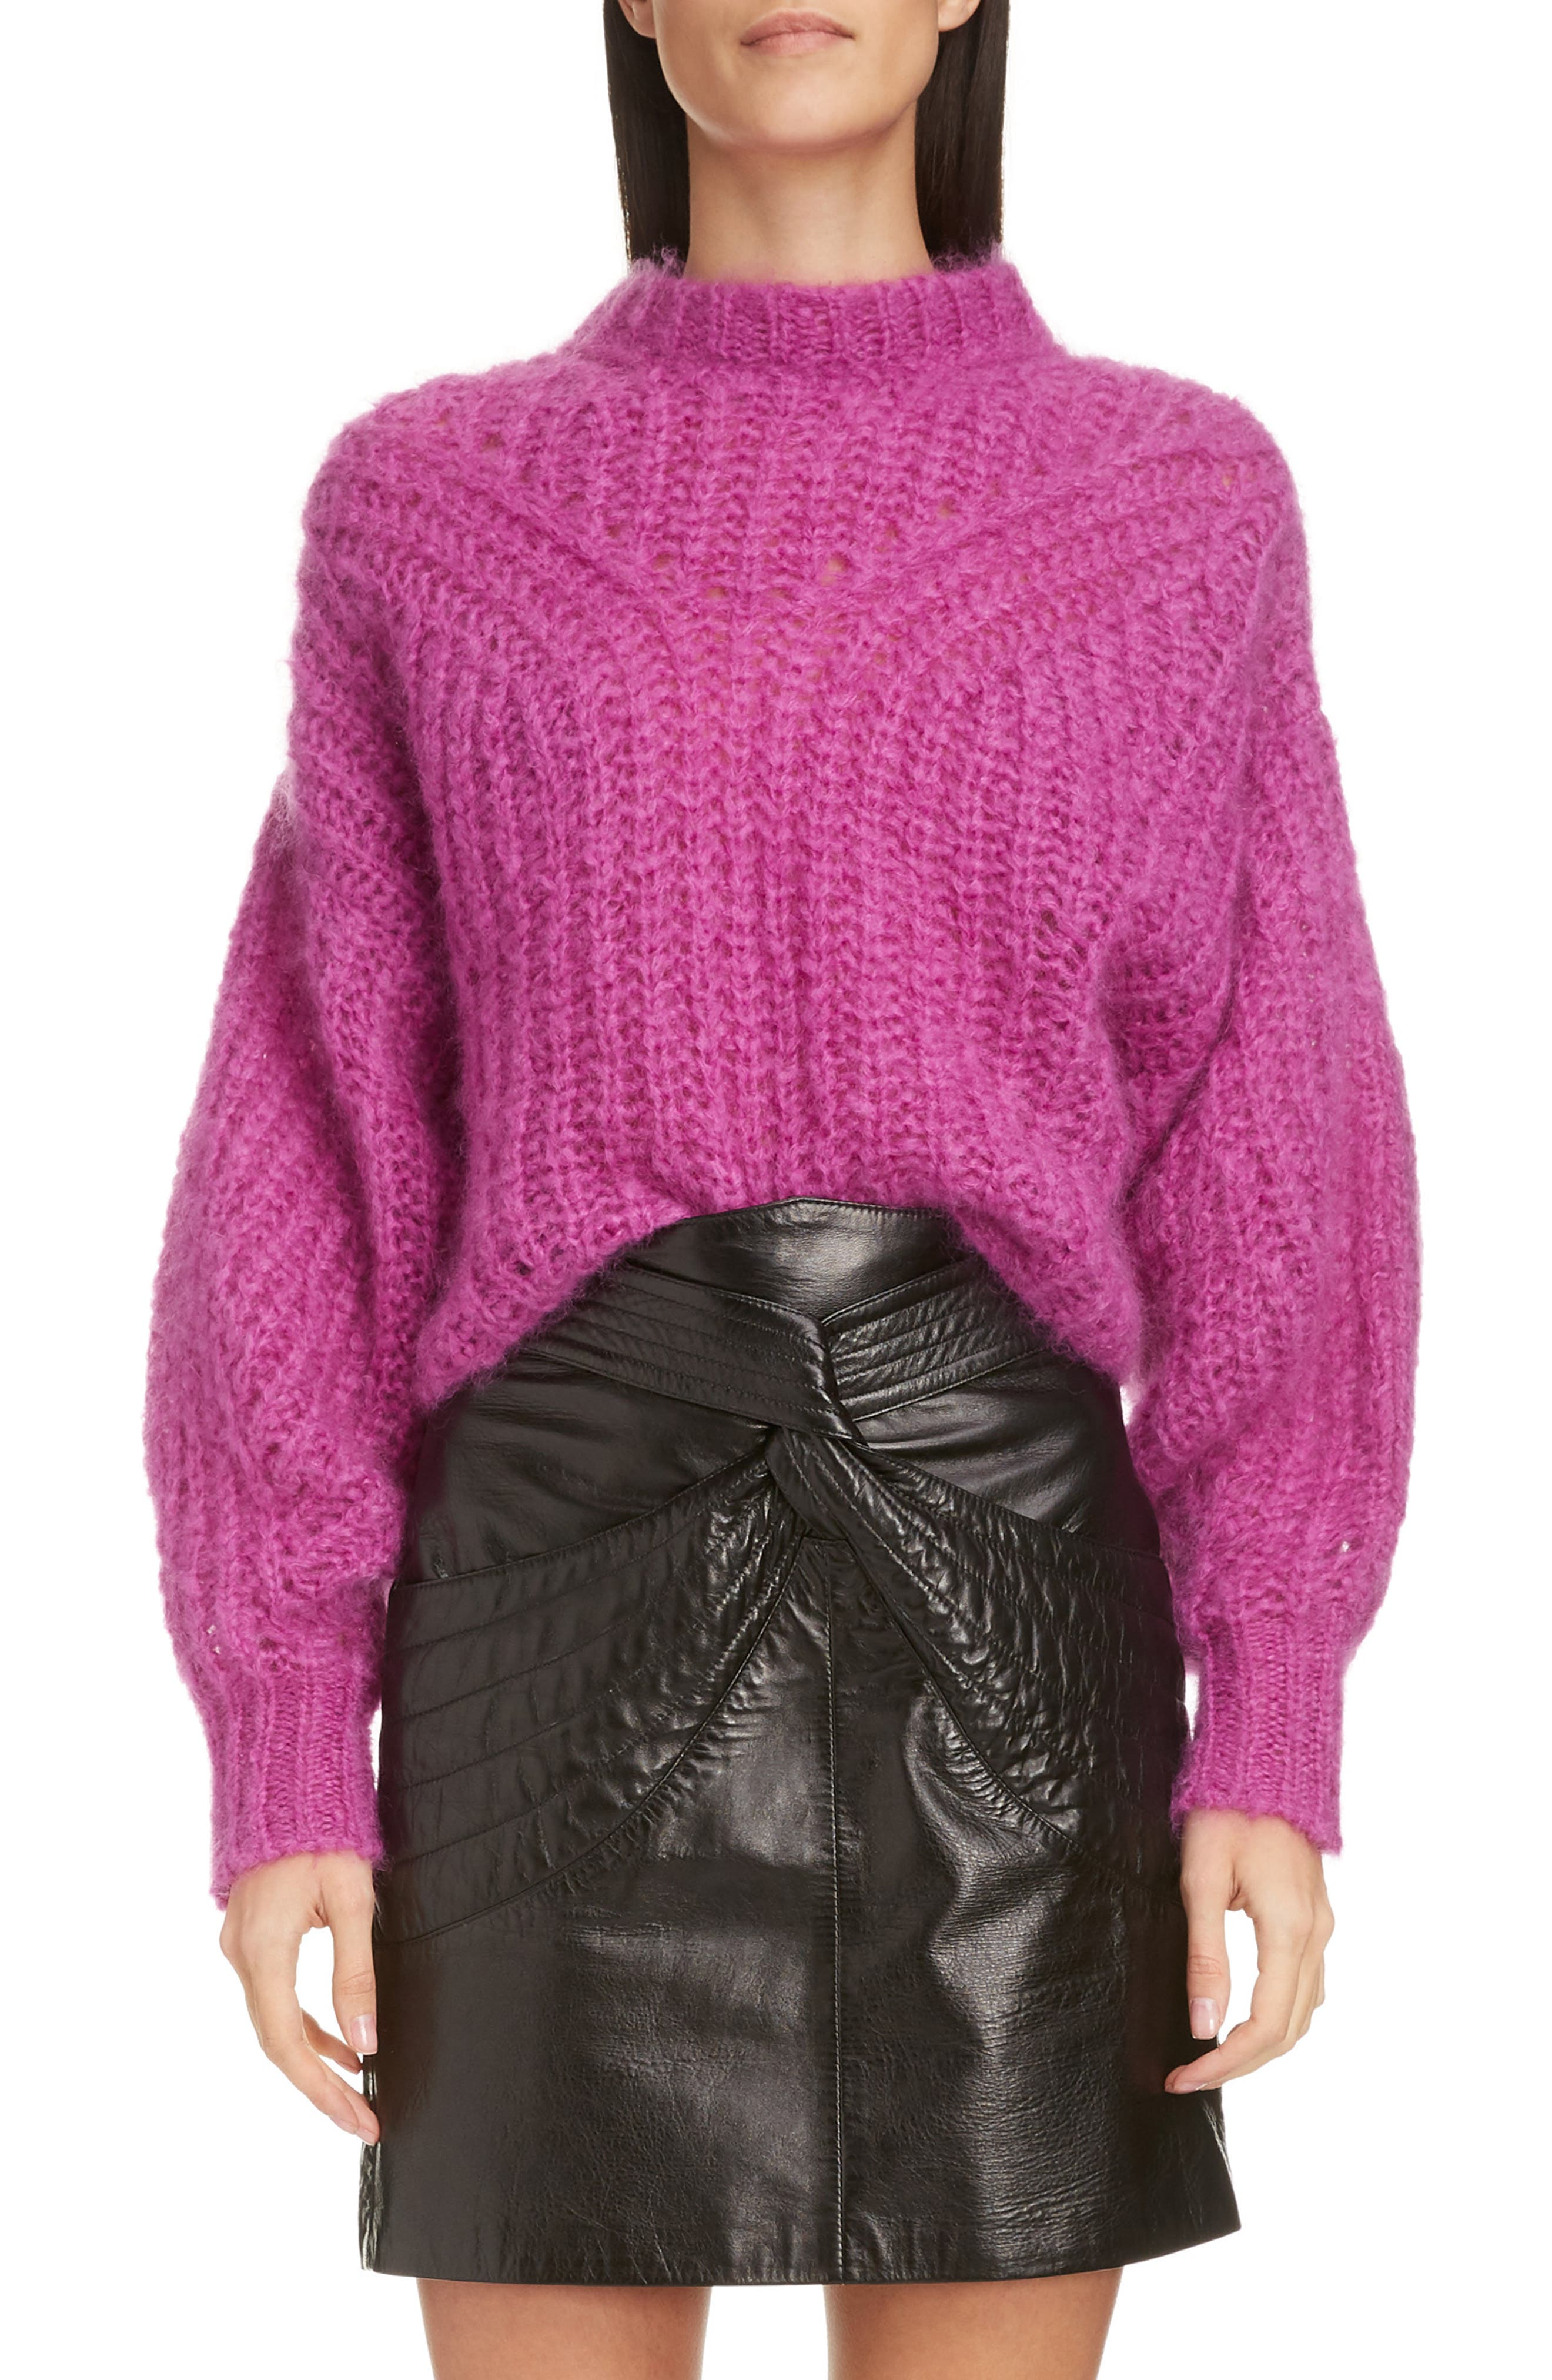 Isabel Marant Puff Sleeve Mohair & Wool Blend Sweater, 4 FR - Pink